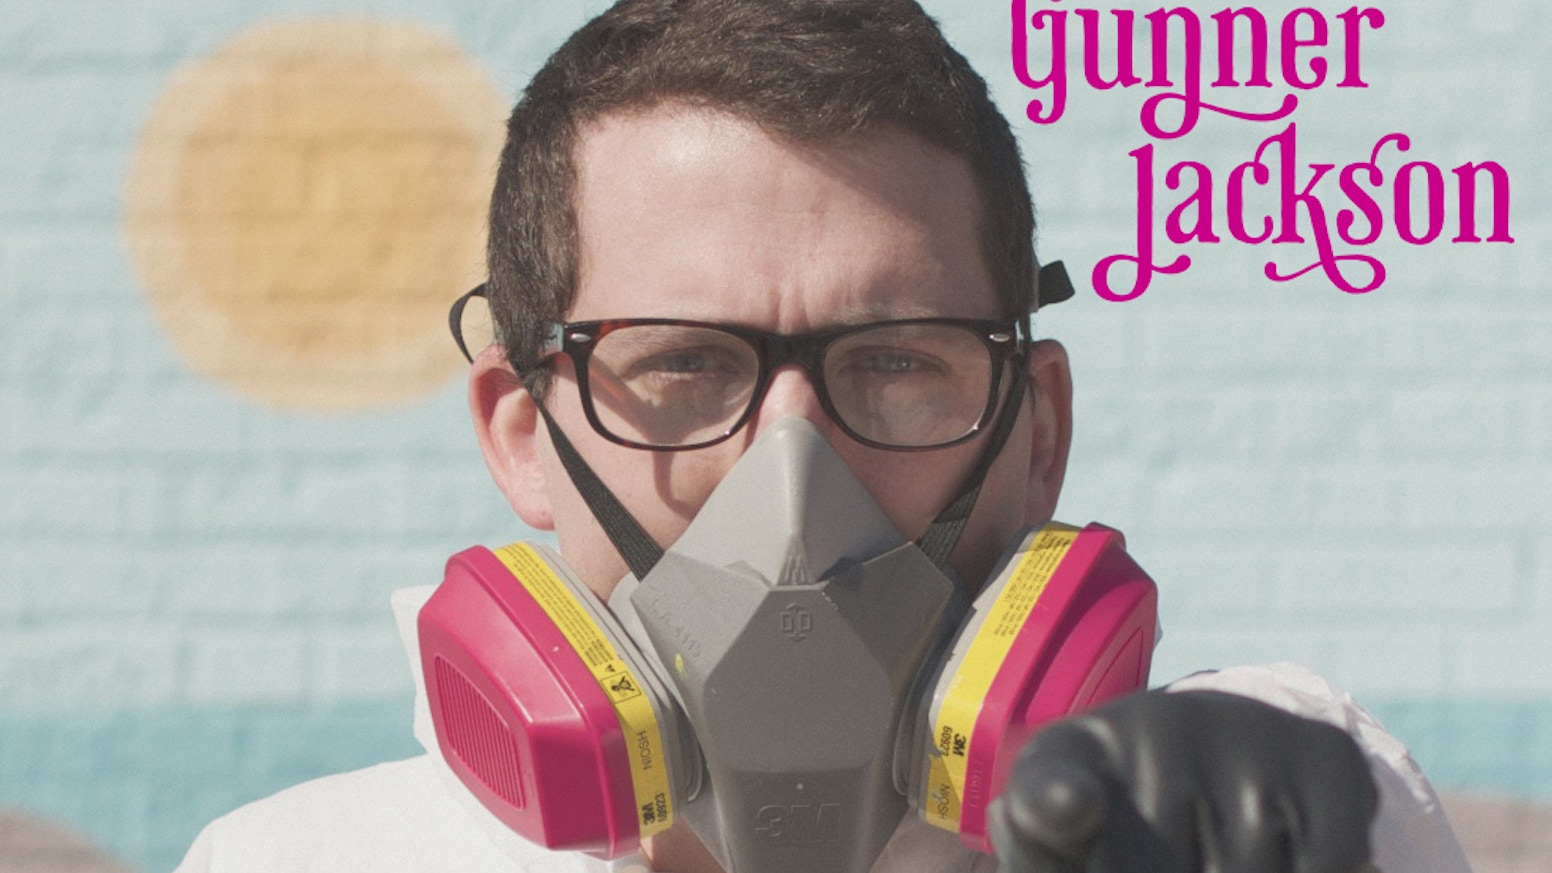 Five short films about Jason Gunner Jackson, a 26 y/o inventor, and his quest to prove he is being surveilled by the U.S. Government.